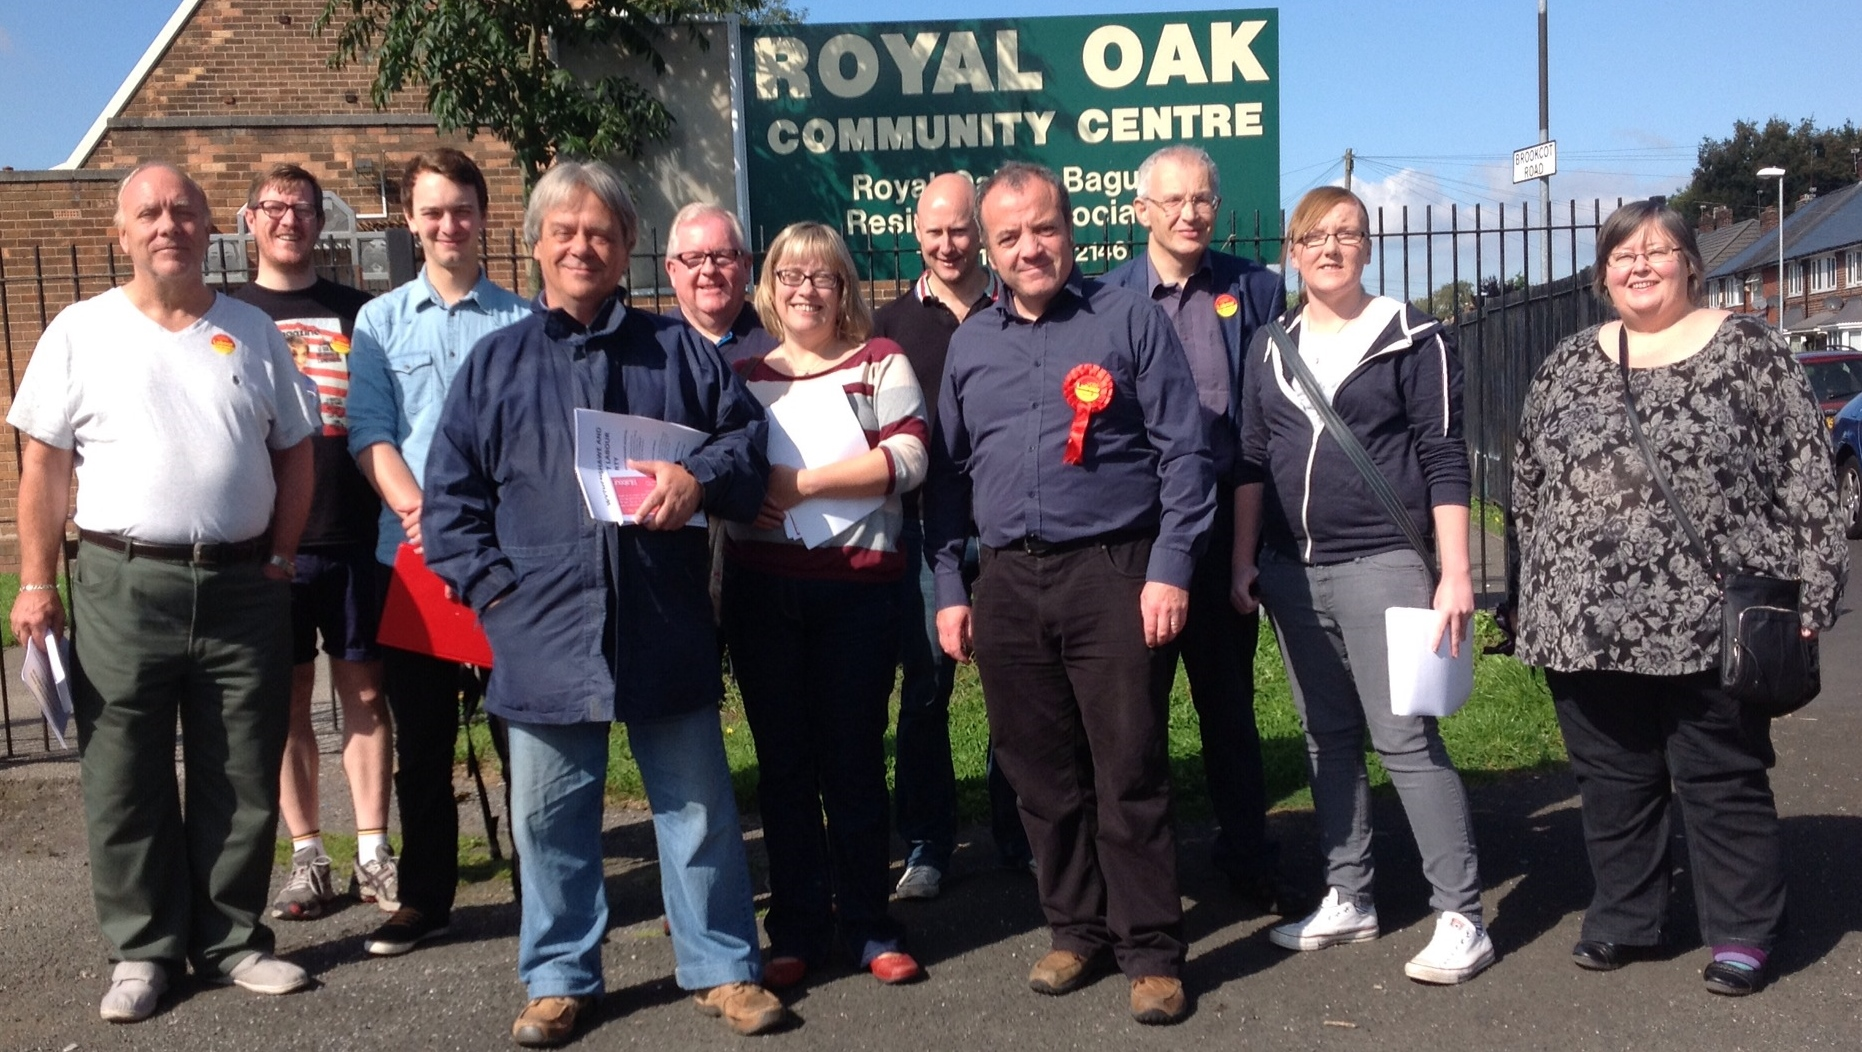 Baguley-Labour-Campaigning.jpg